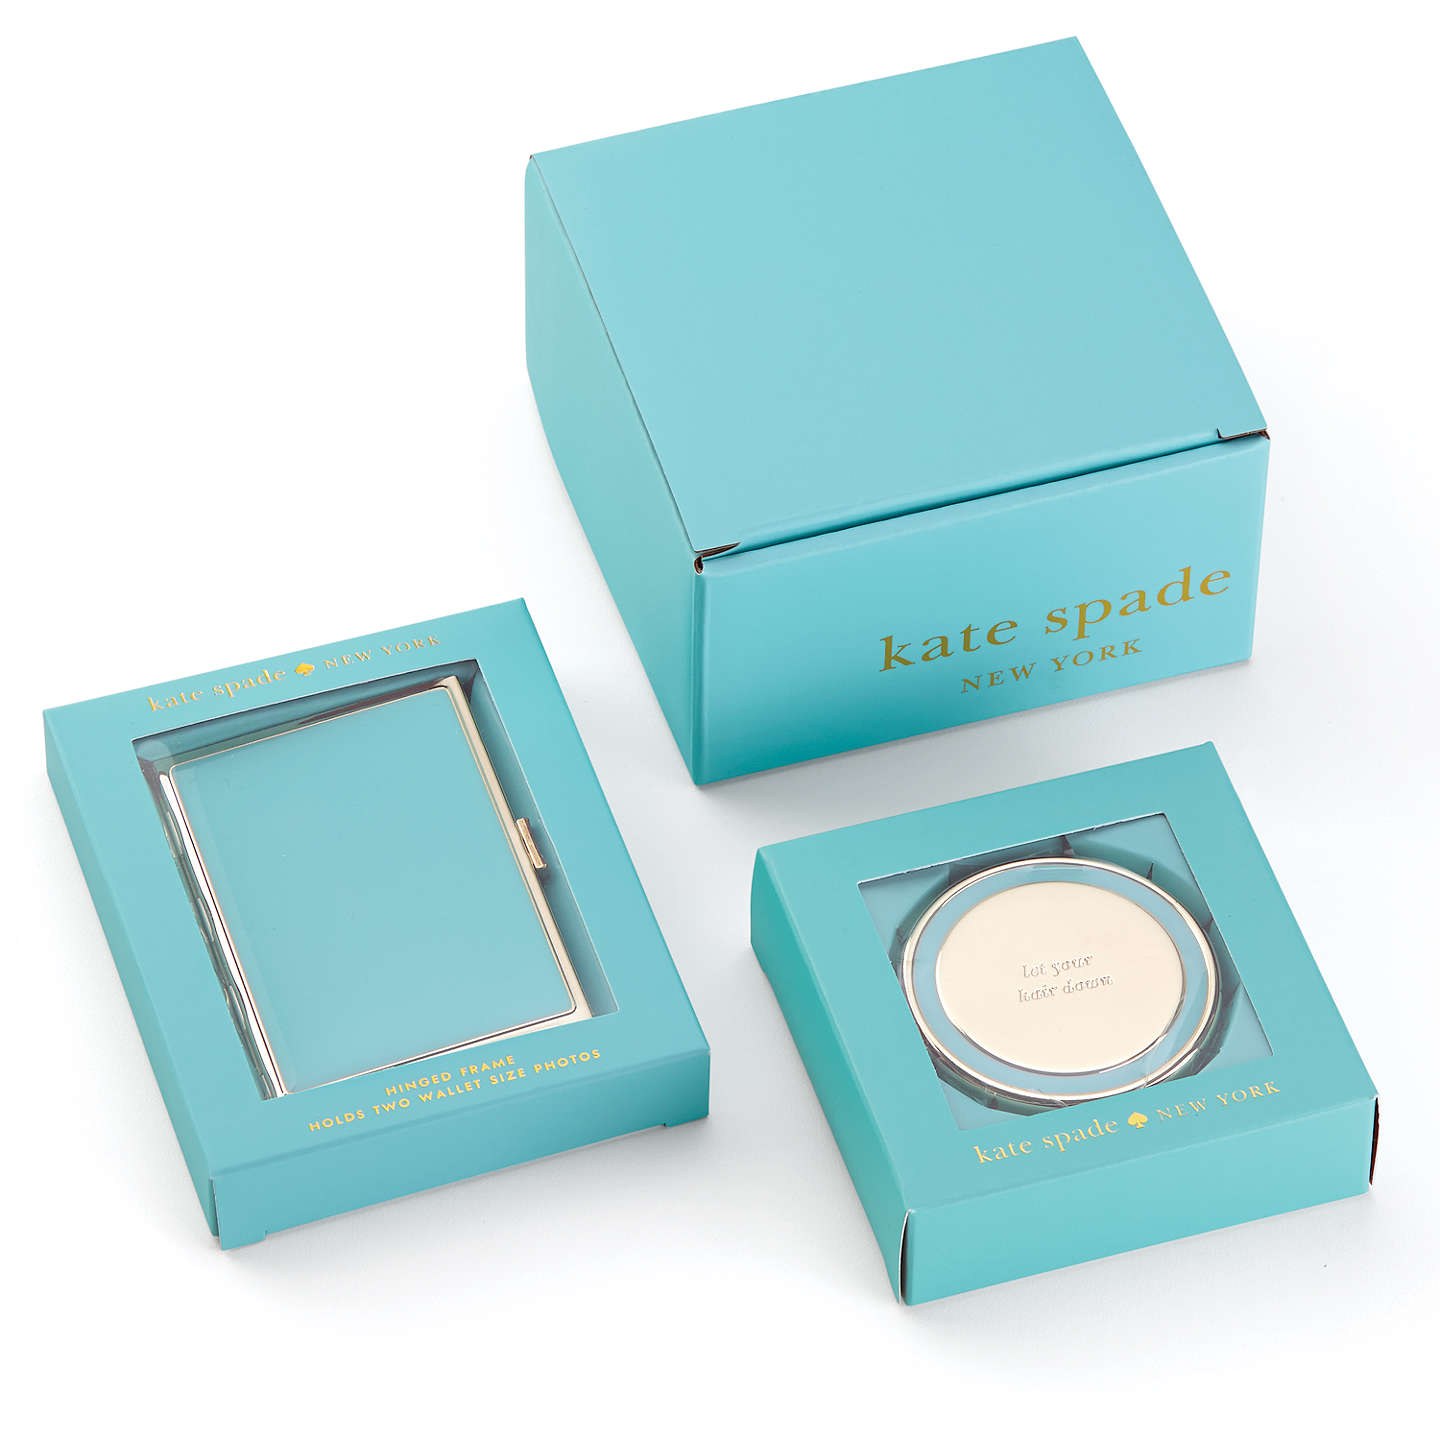 Kate spade new york holly drive compact mirror at john lewis for Mirror spades